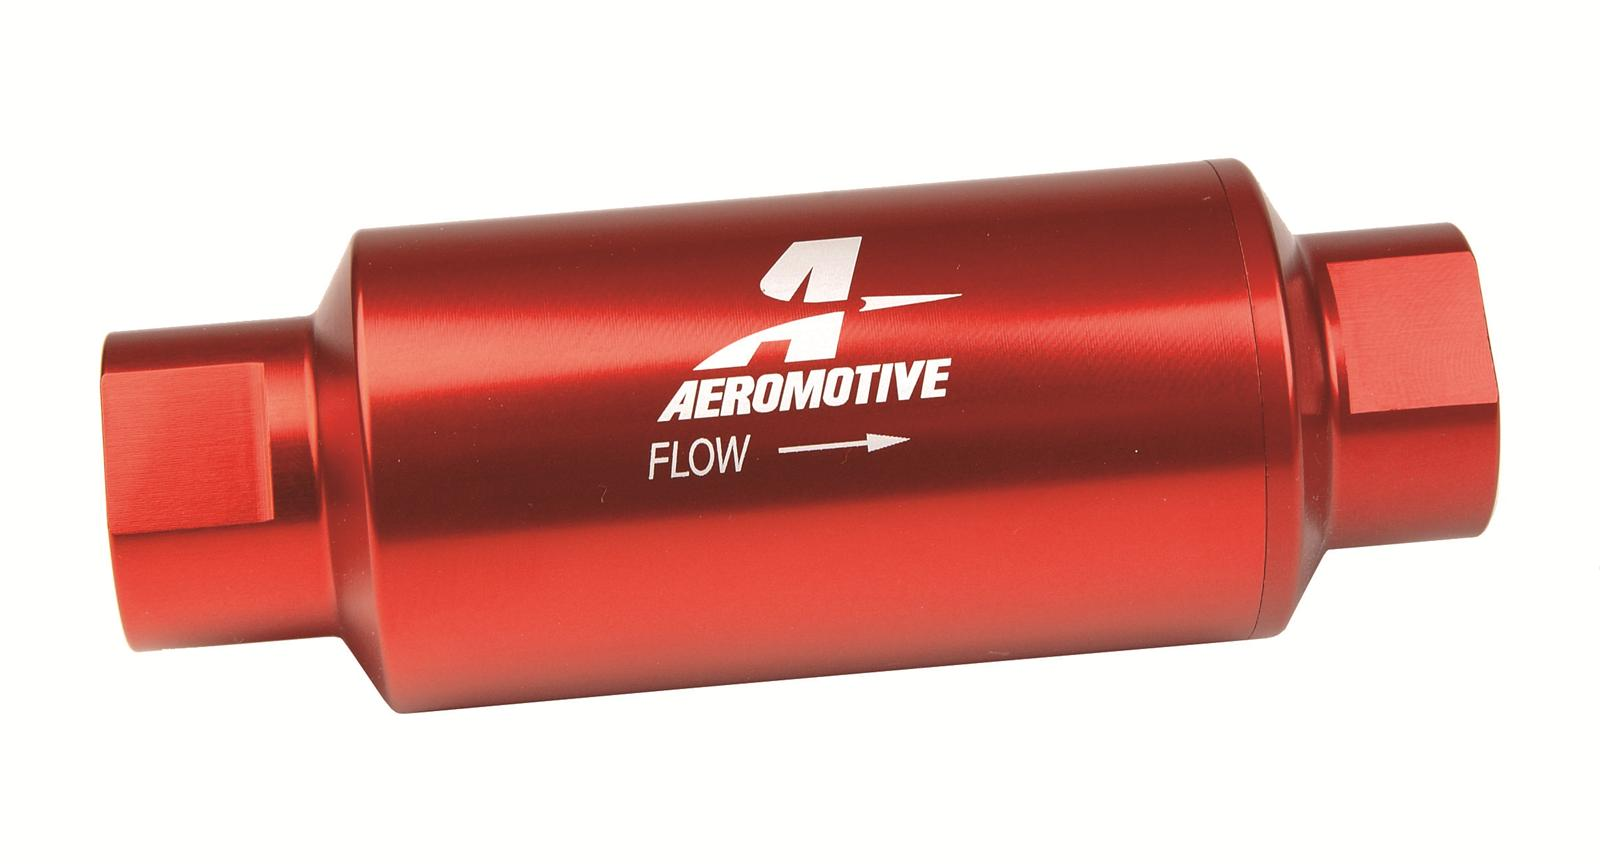 hight resolution of aeromotive fuel filters 12304 free shipping on orders over 99 at summit racing